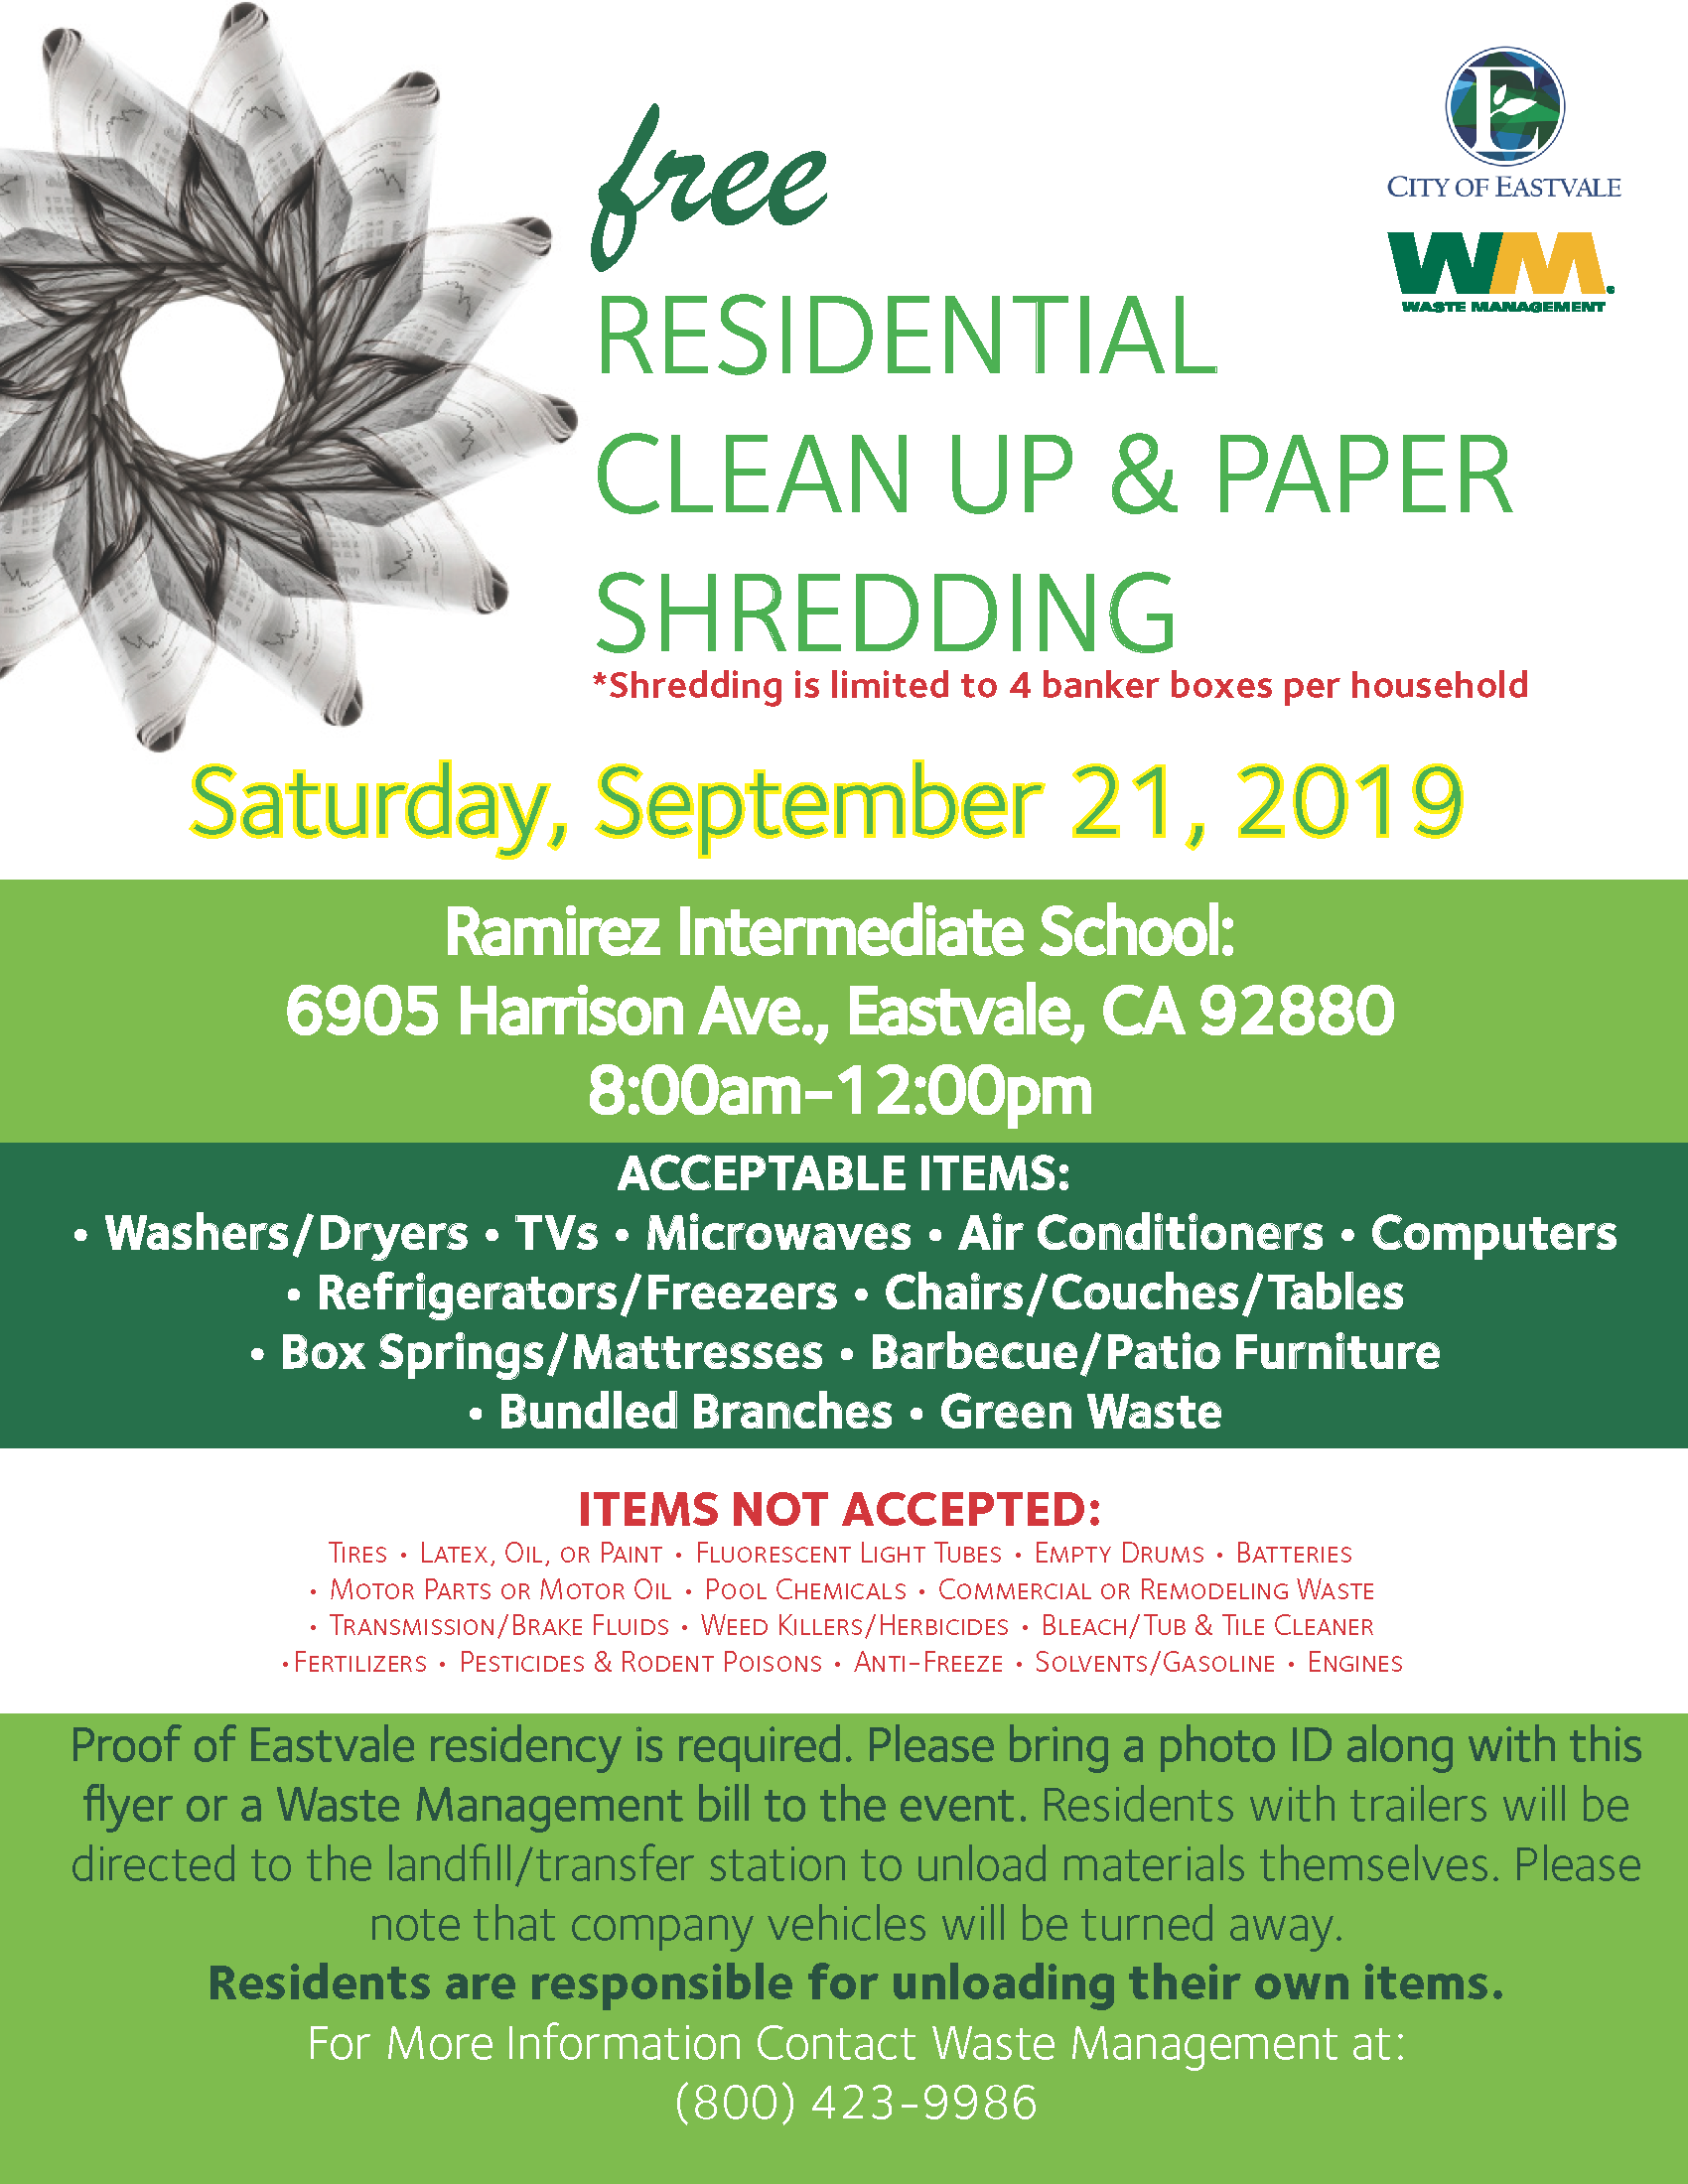 Eastvale Clean Up and Shred Event Sept. 21 2019